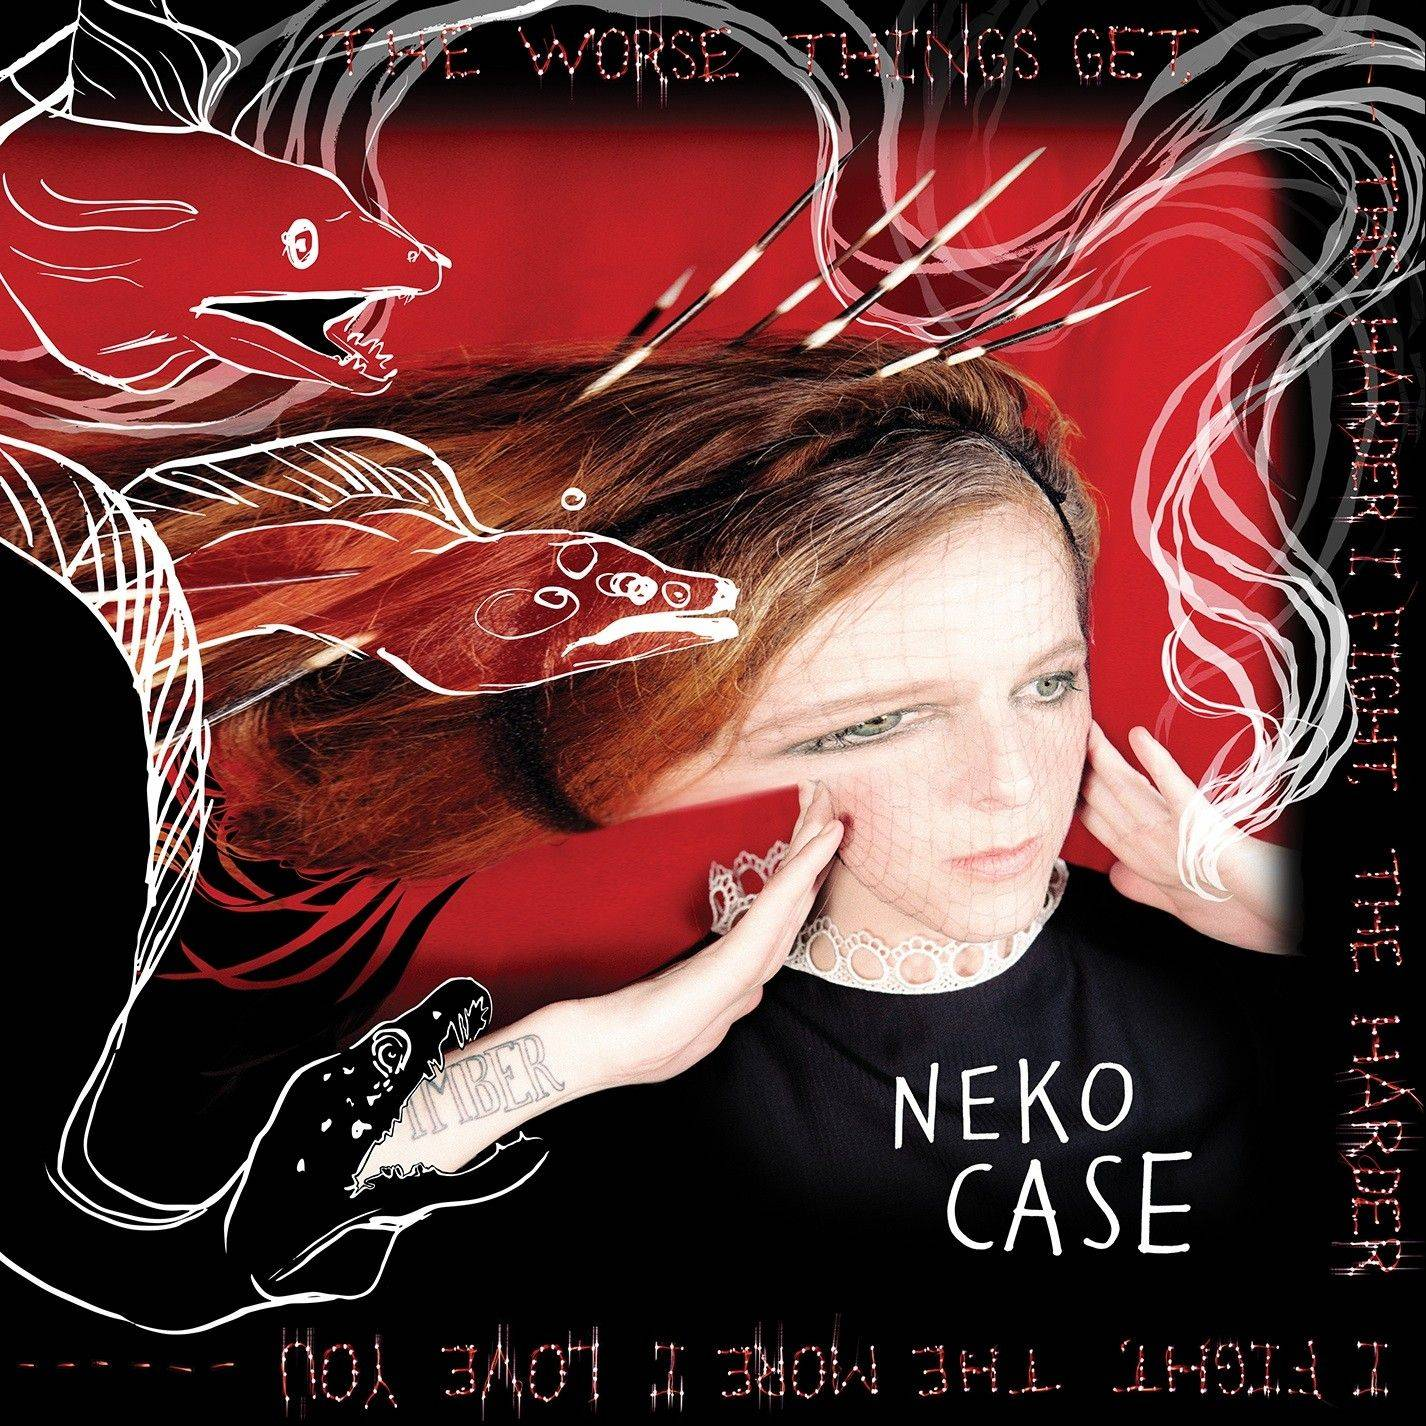 �The Worse Things Get, The Harder I Fight, The Harder I Fight, The More I Love You� by Neko Case